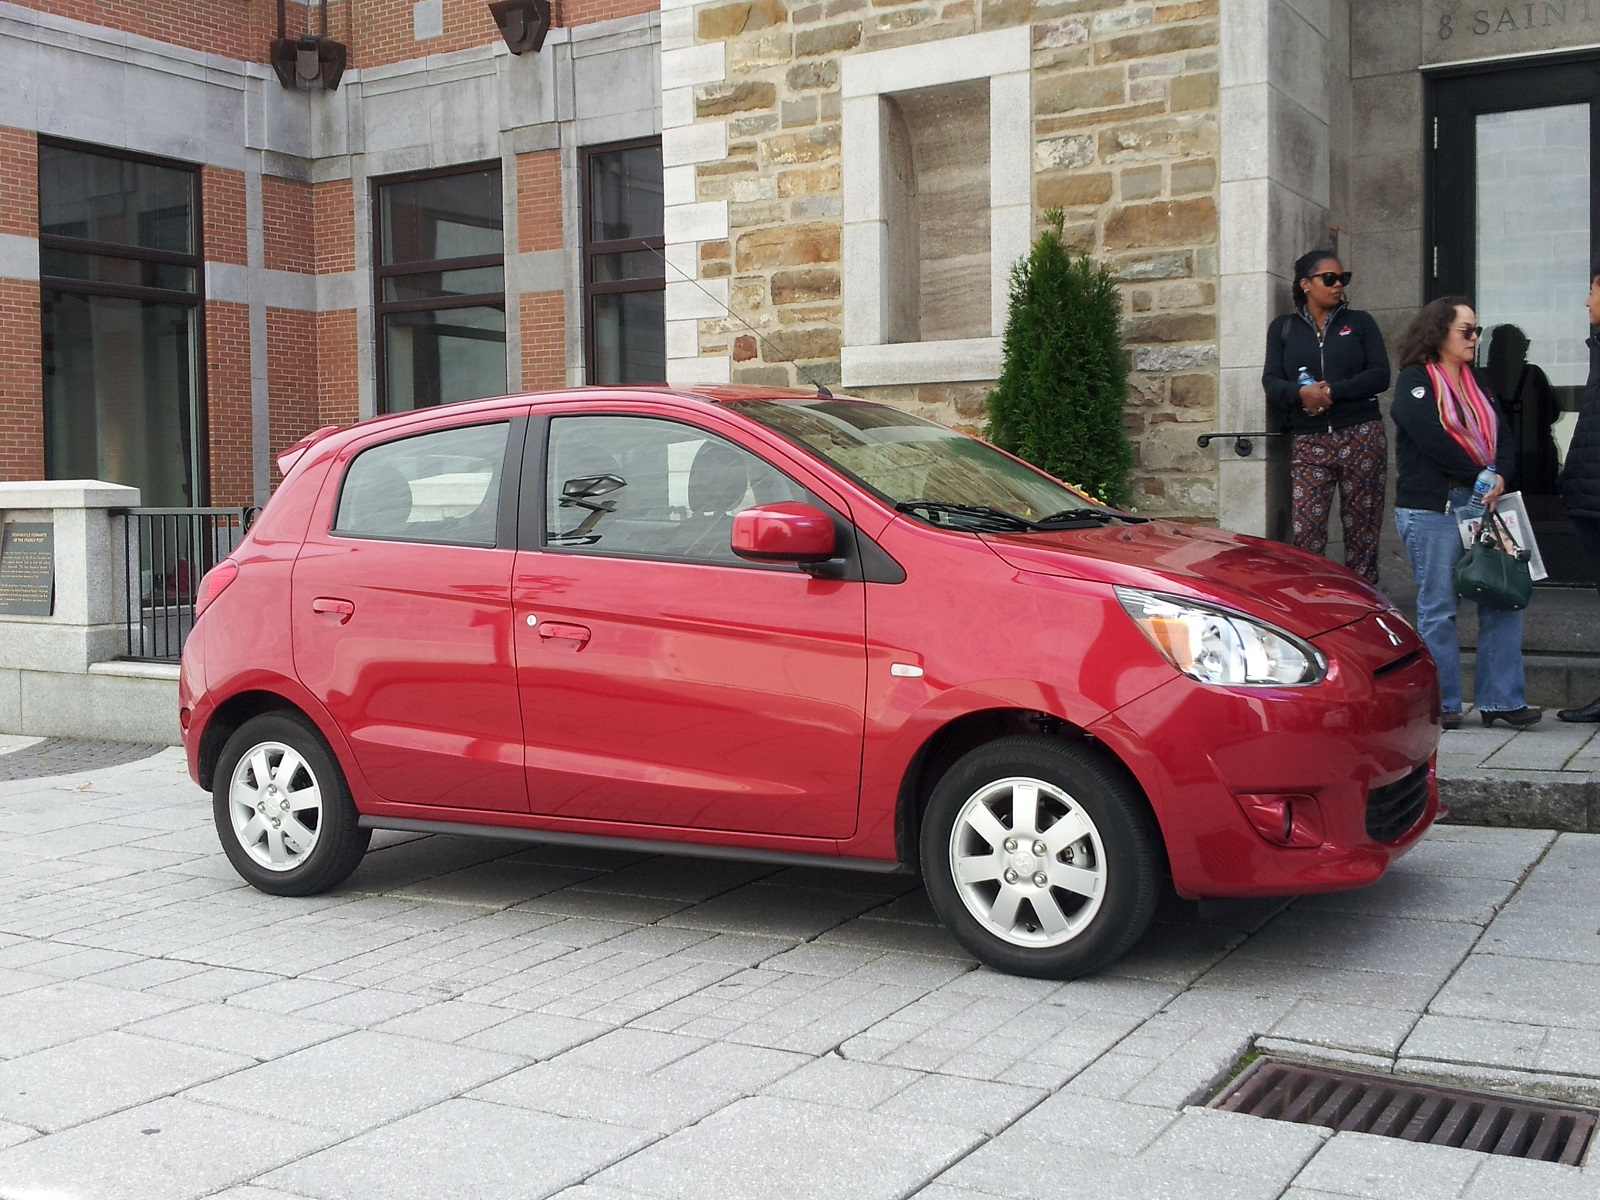 2014 Mitsubishi Mirage 40 Mpg Minicar Gas Mileage Test